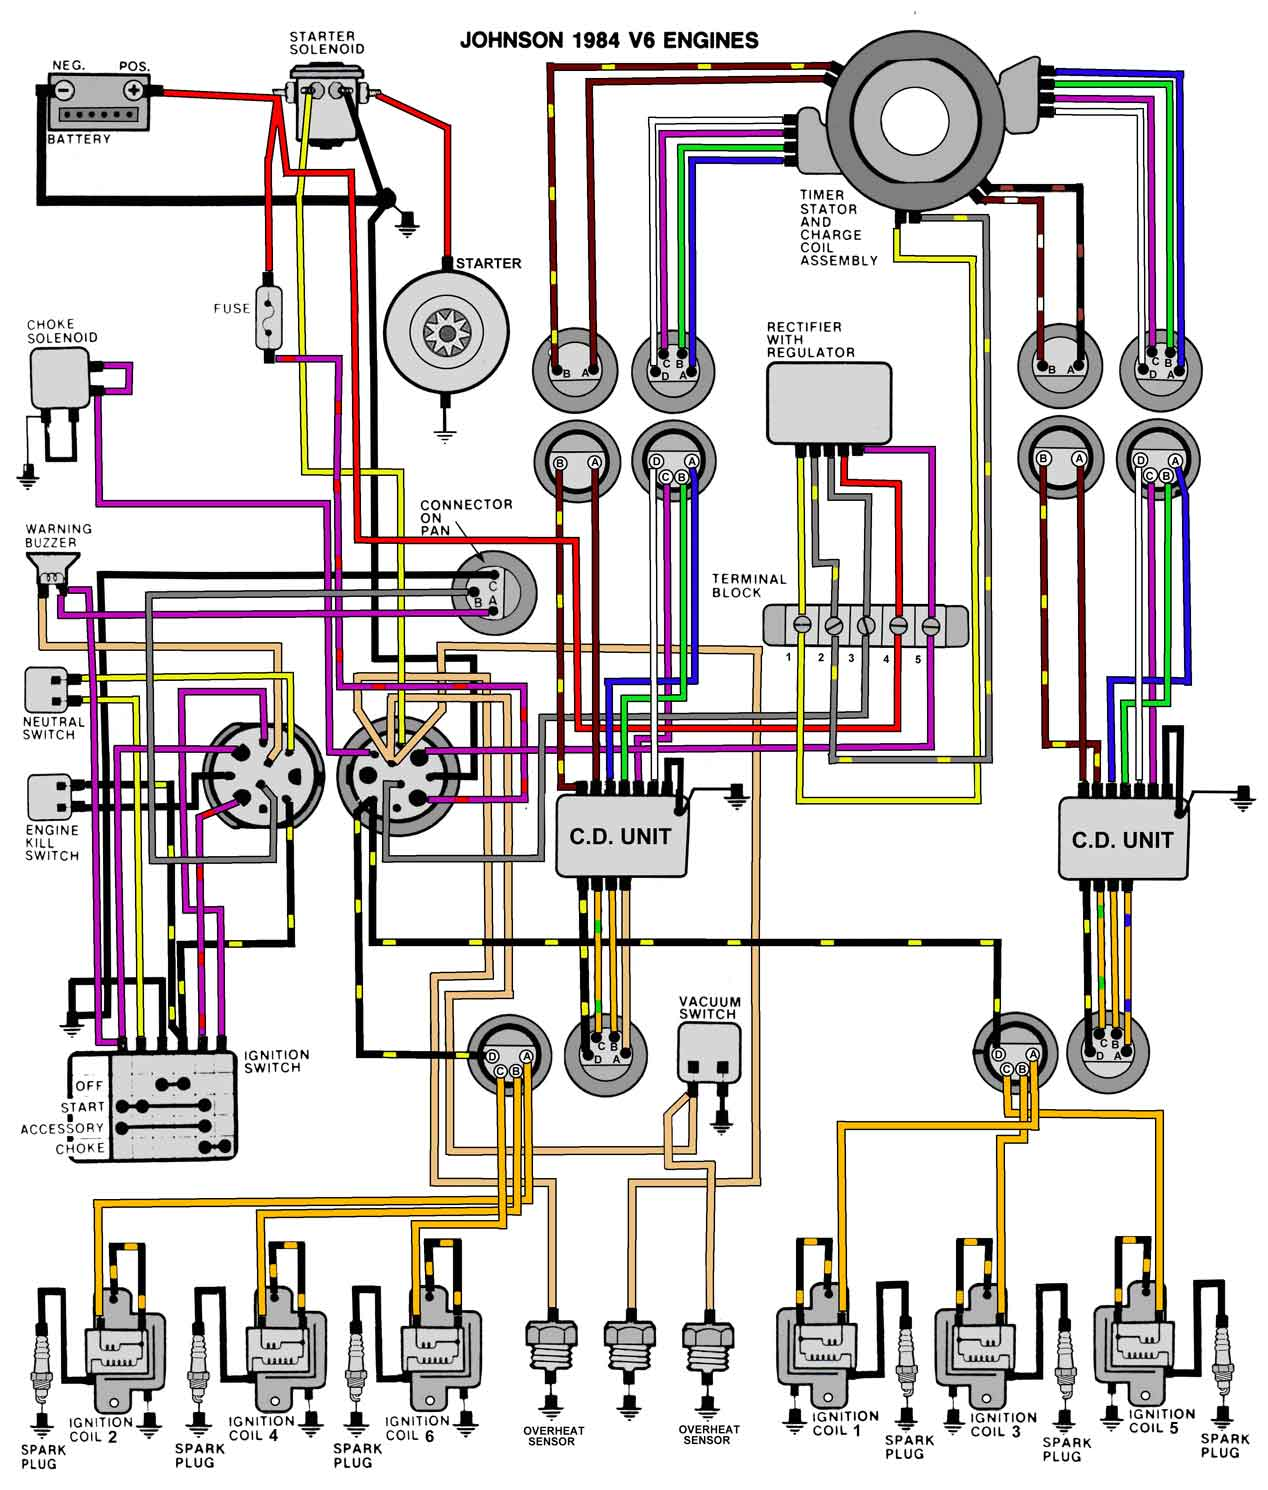 84_V6 boat motor wiring diagram small boat wiring diagram \u2022 wiring Boat Ignition Switch Wiring Diagram at highcare.asia